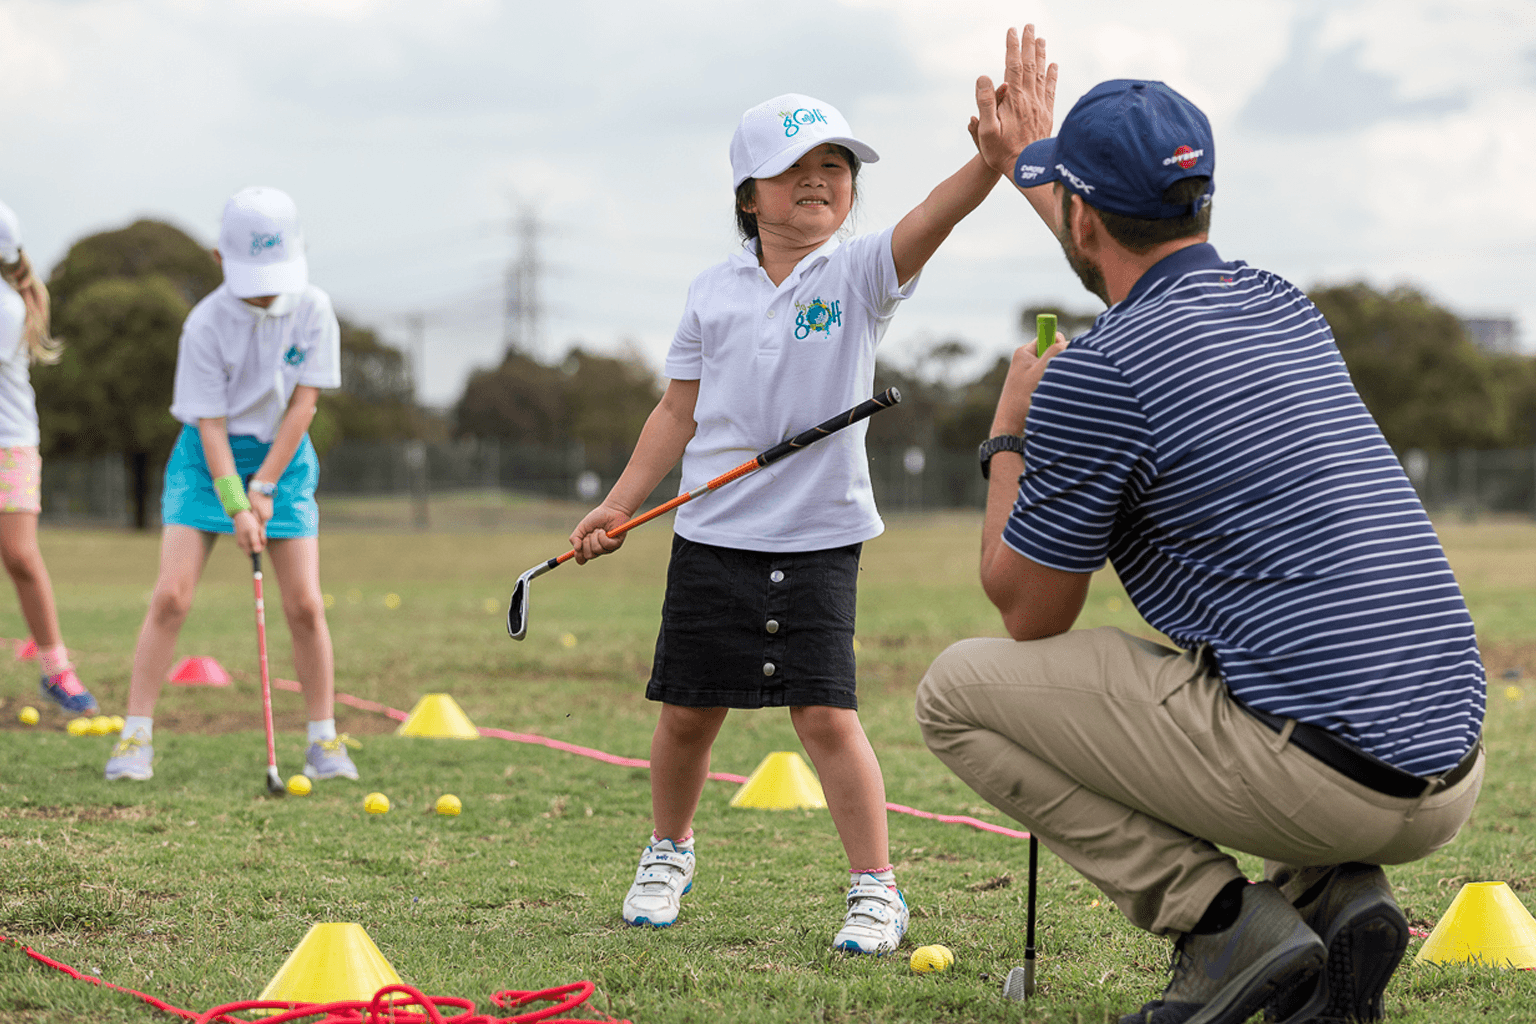 Young girl wearing white cap and golf shirt holds a golf club while high-fiving a golf coach.